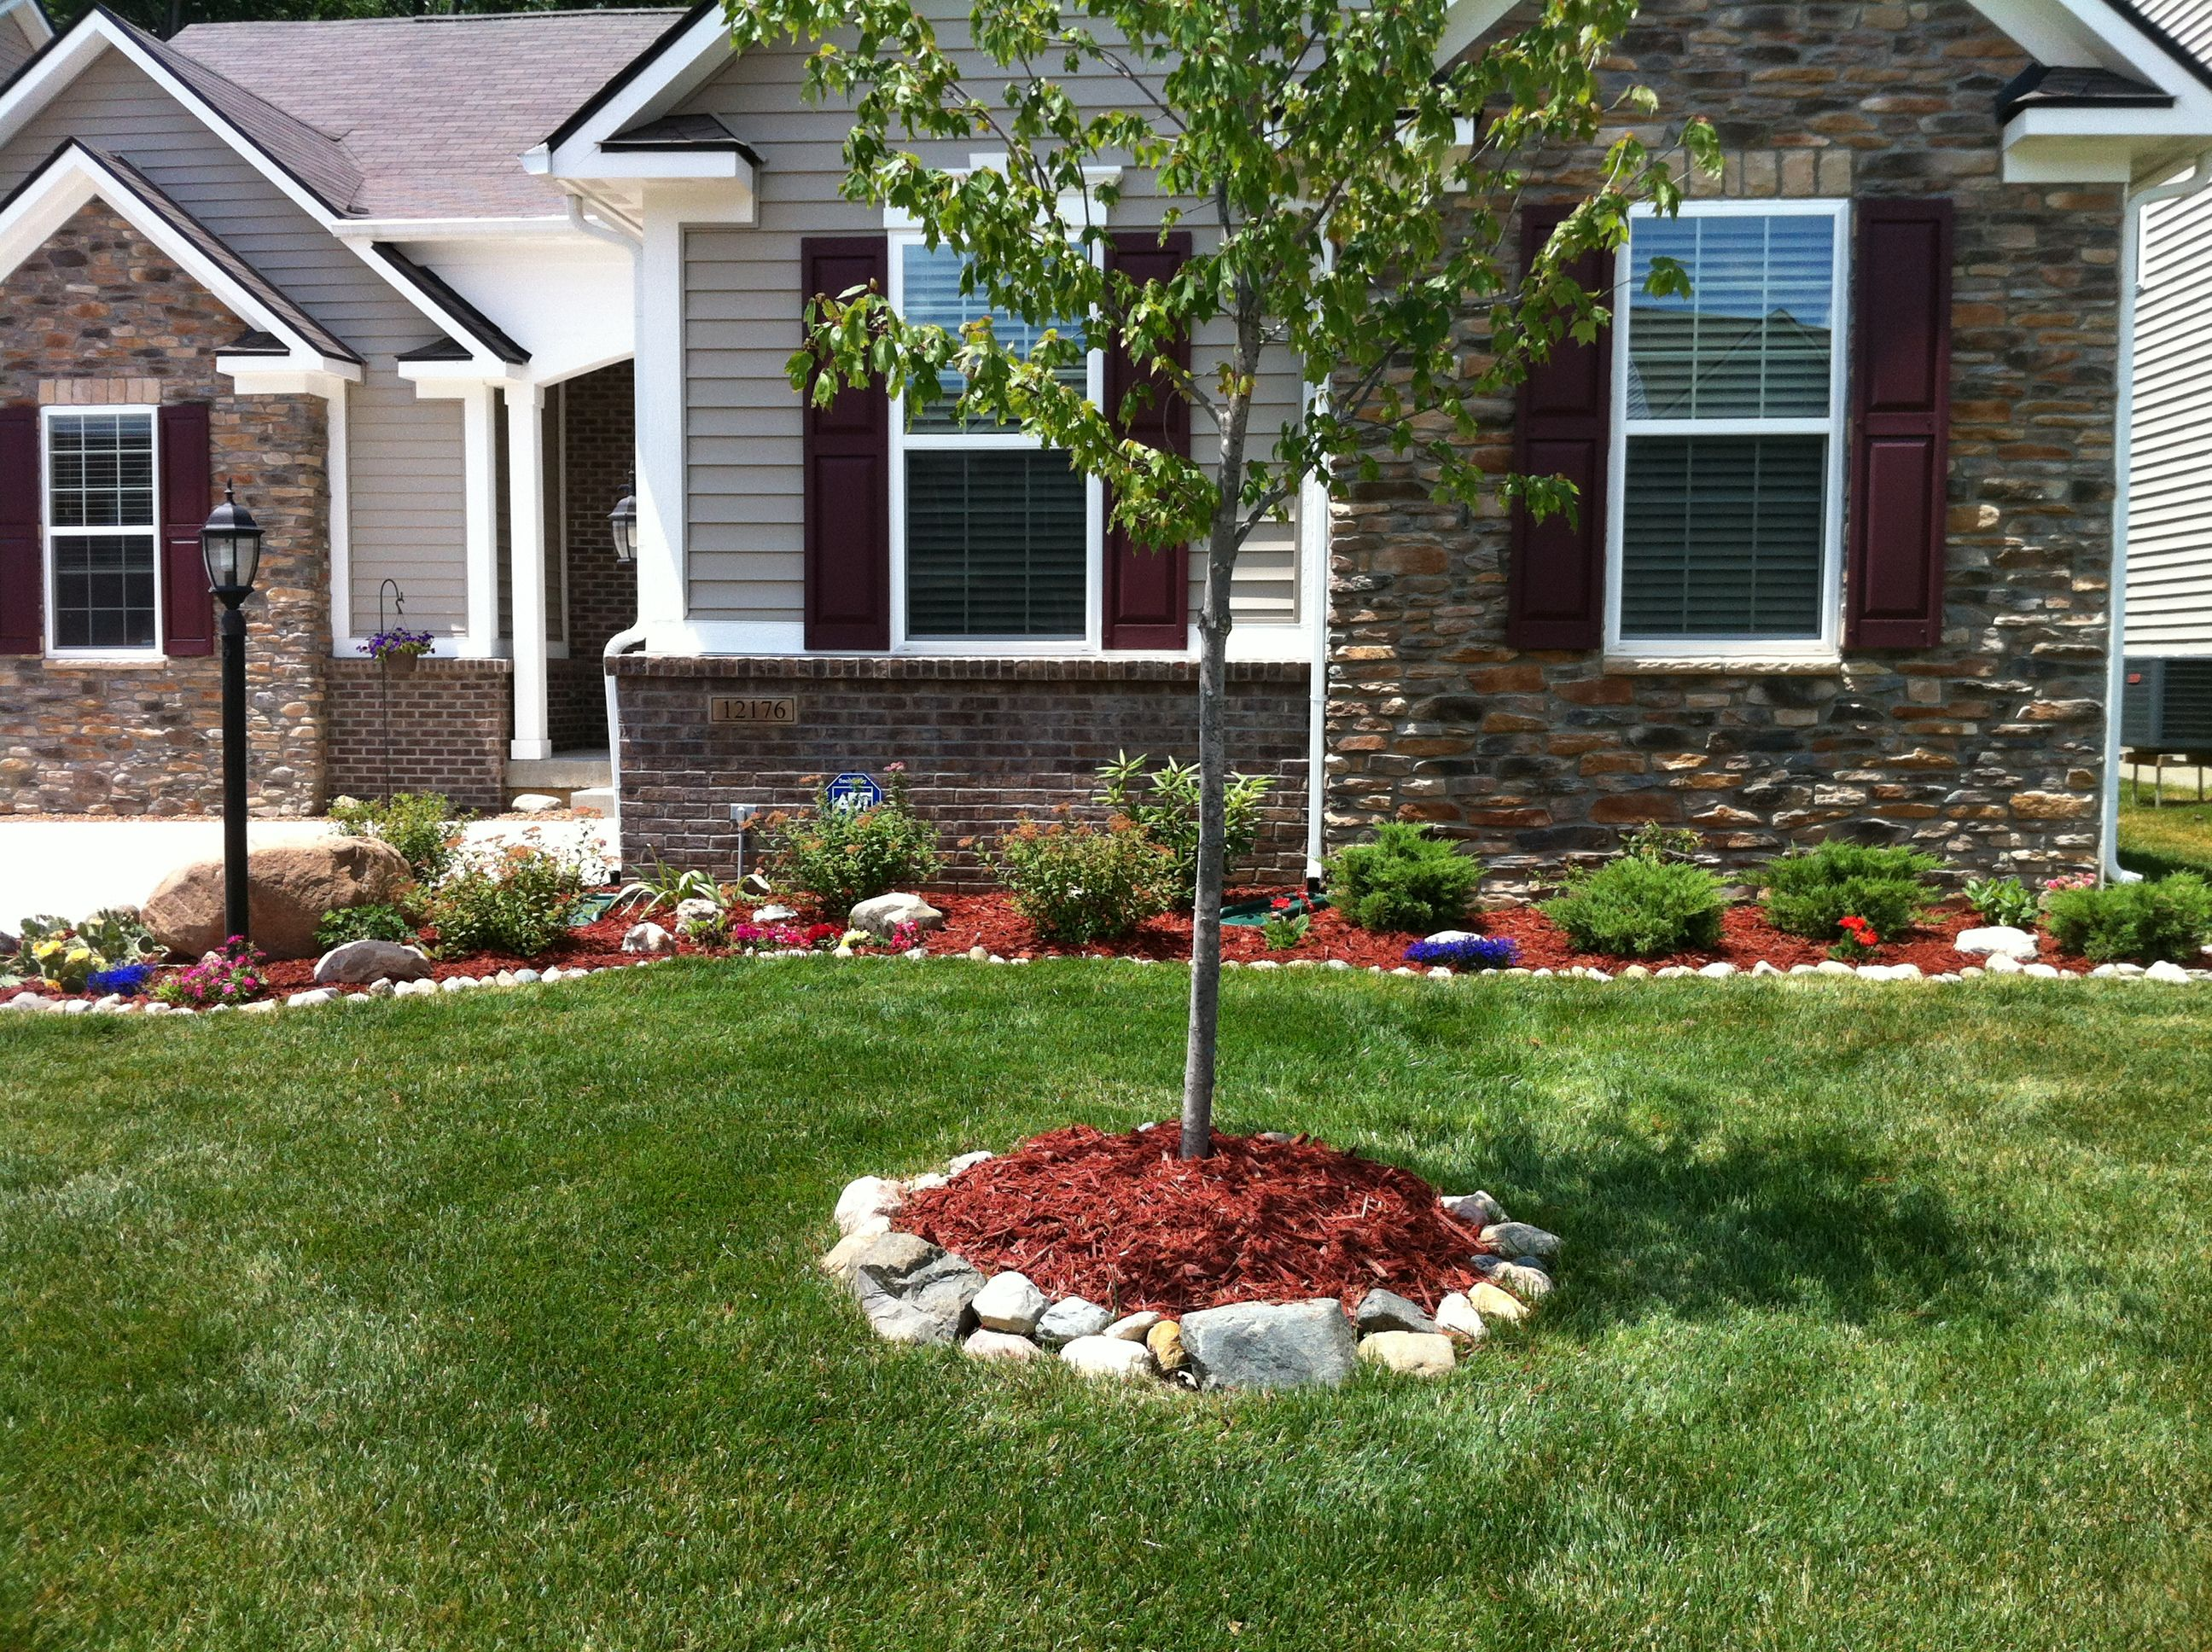 Front yard landscaping ideas pinterest for Front lawn landscaping designs